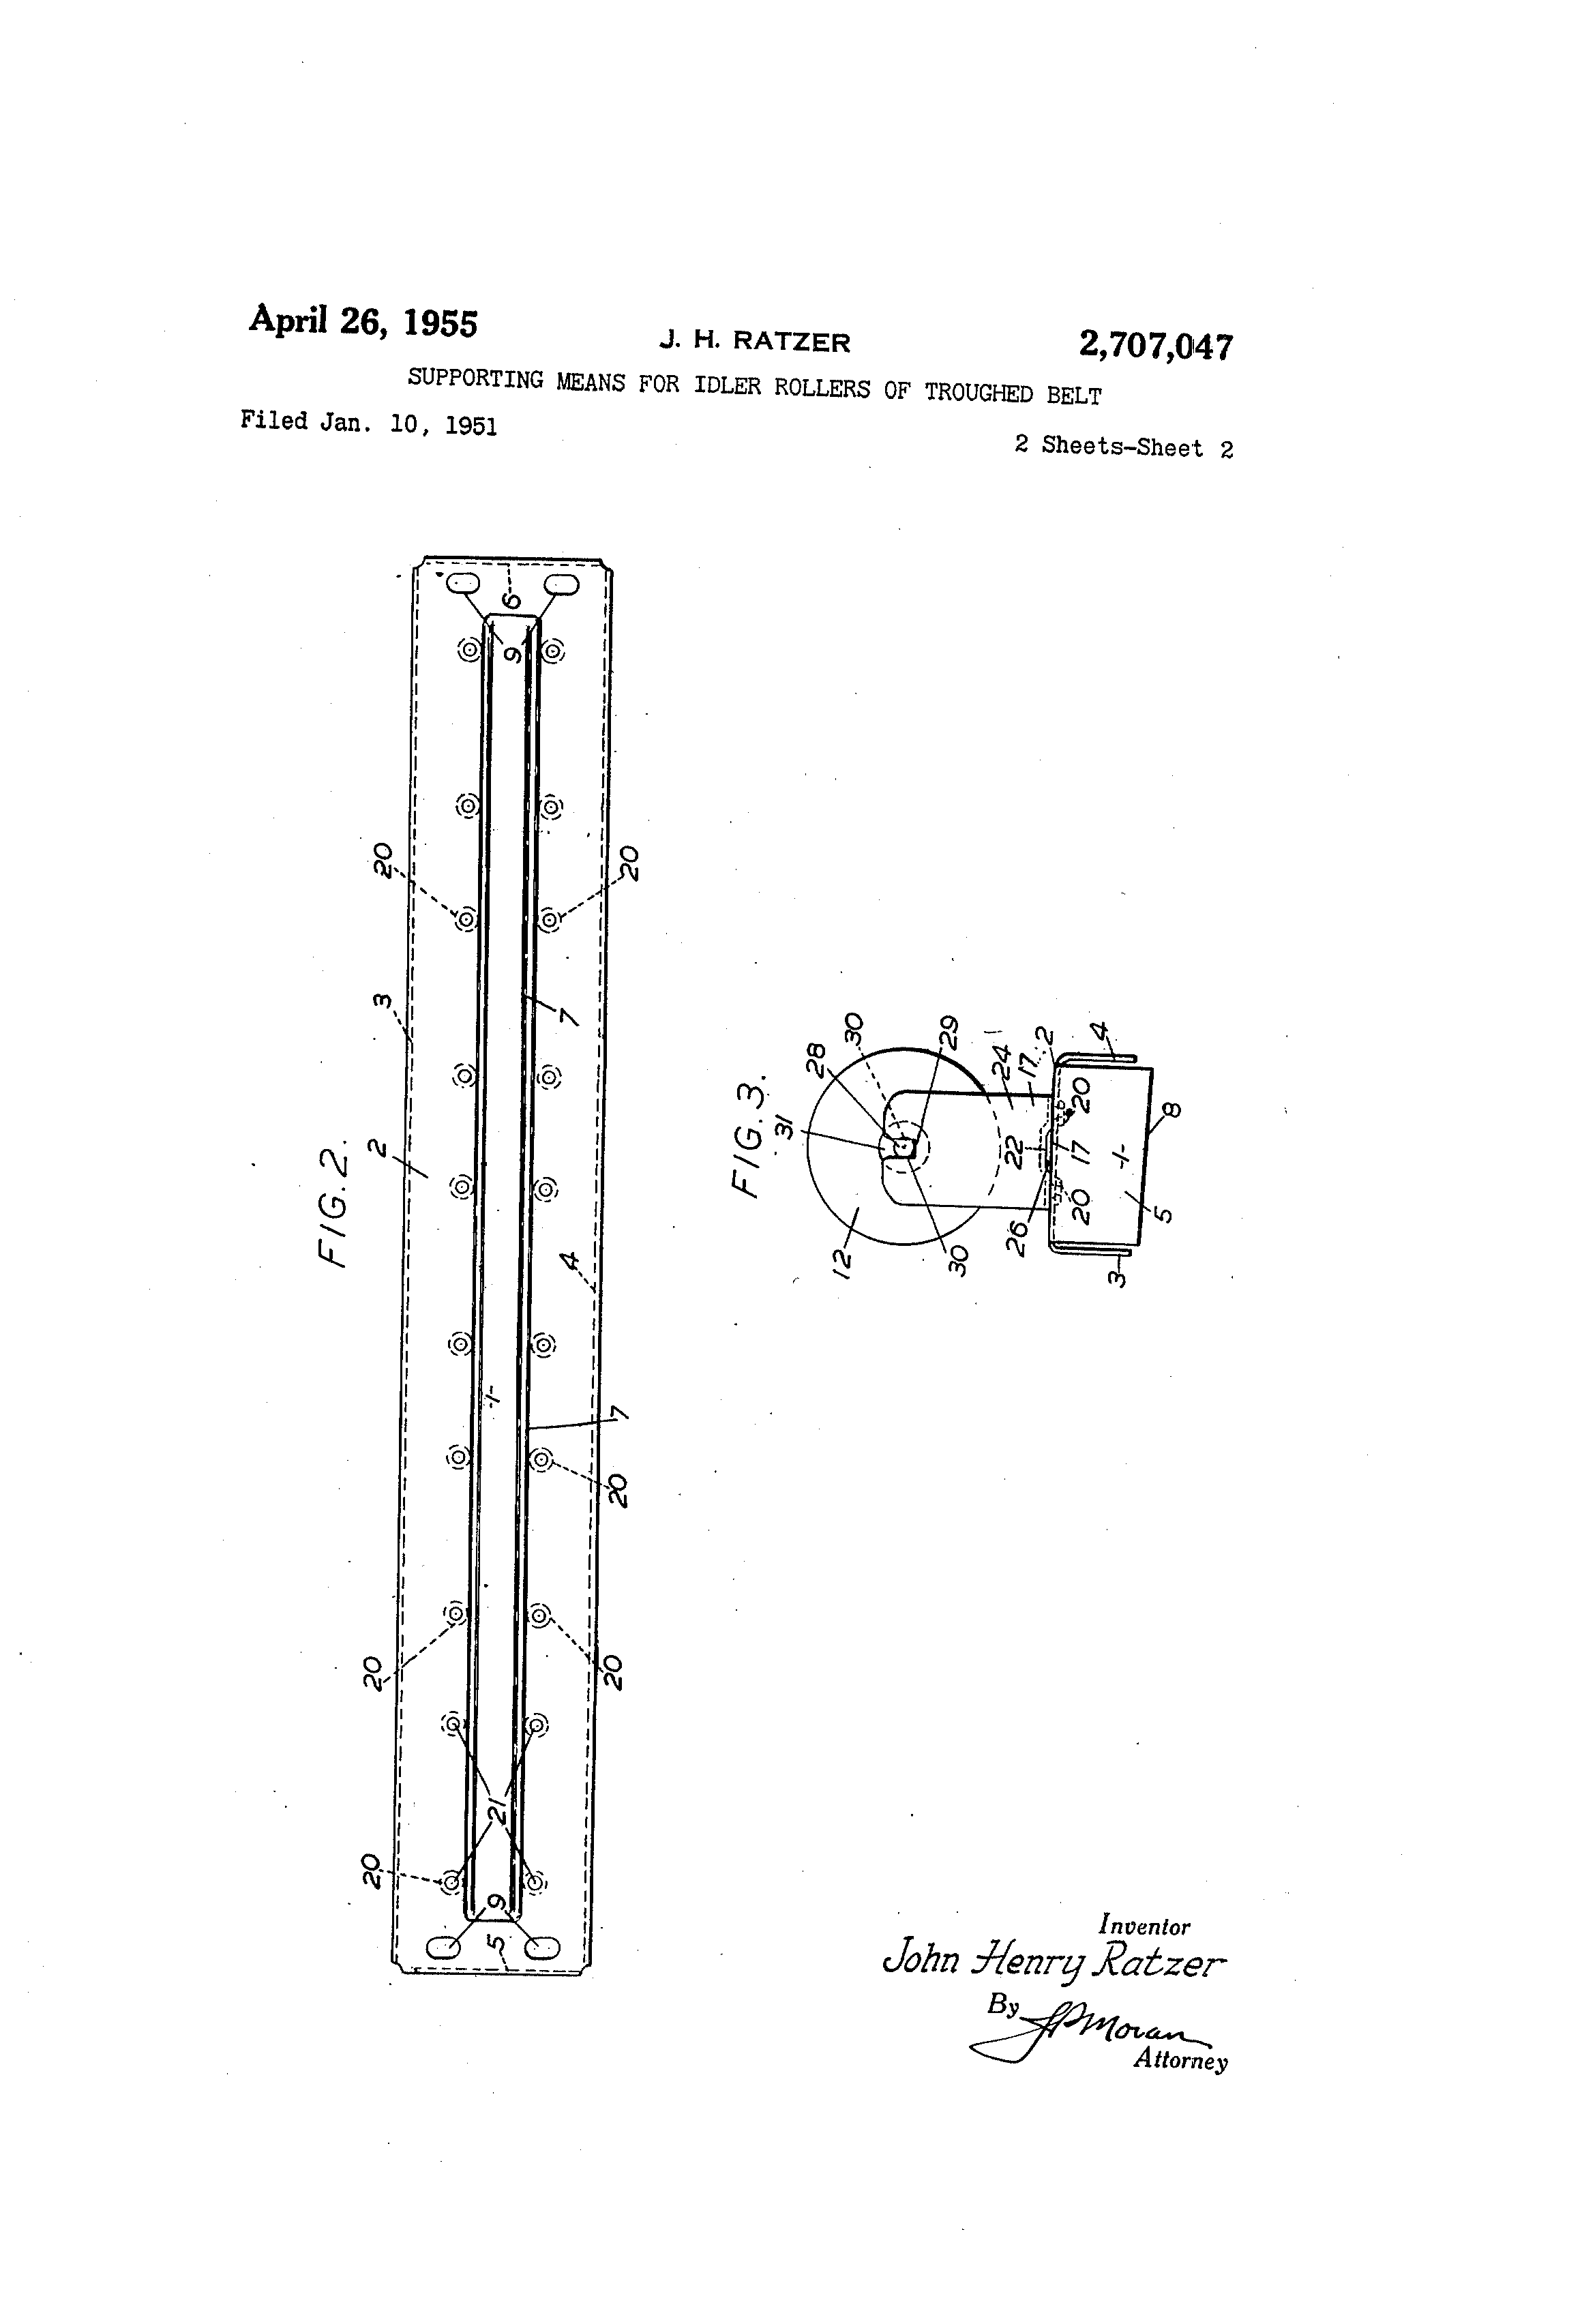 Patent US2707047 - Supporting means for idler rollers of troughed